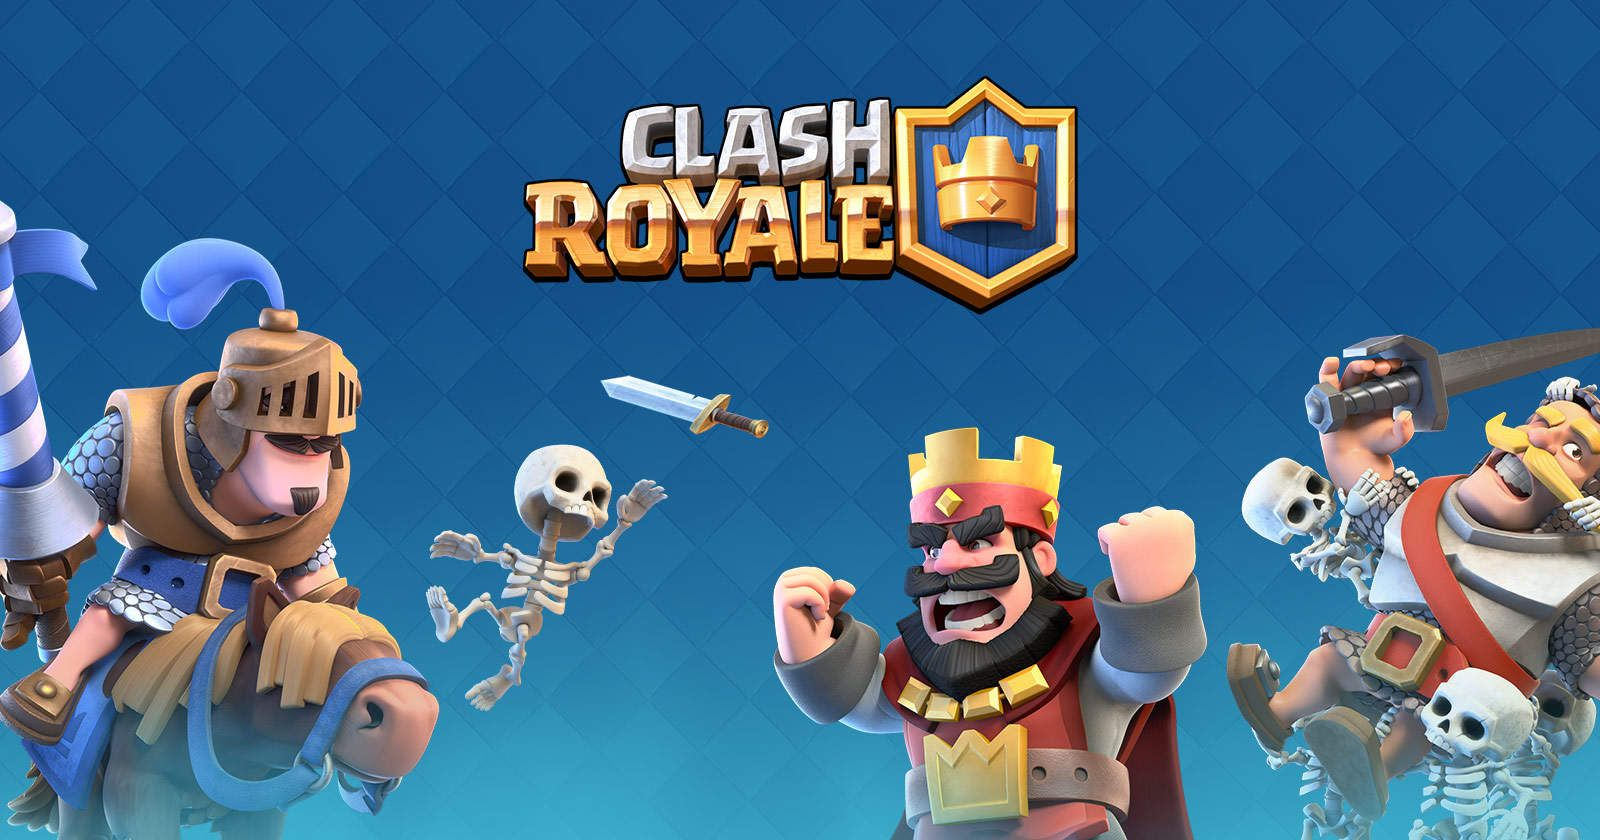 Download clash royale mod 186 android game pakistan computer download clash royale mod 186 android game pakistan computer urdu it tutorial baditri Choice Image